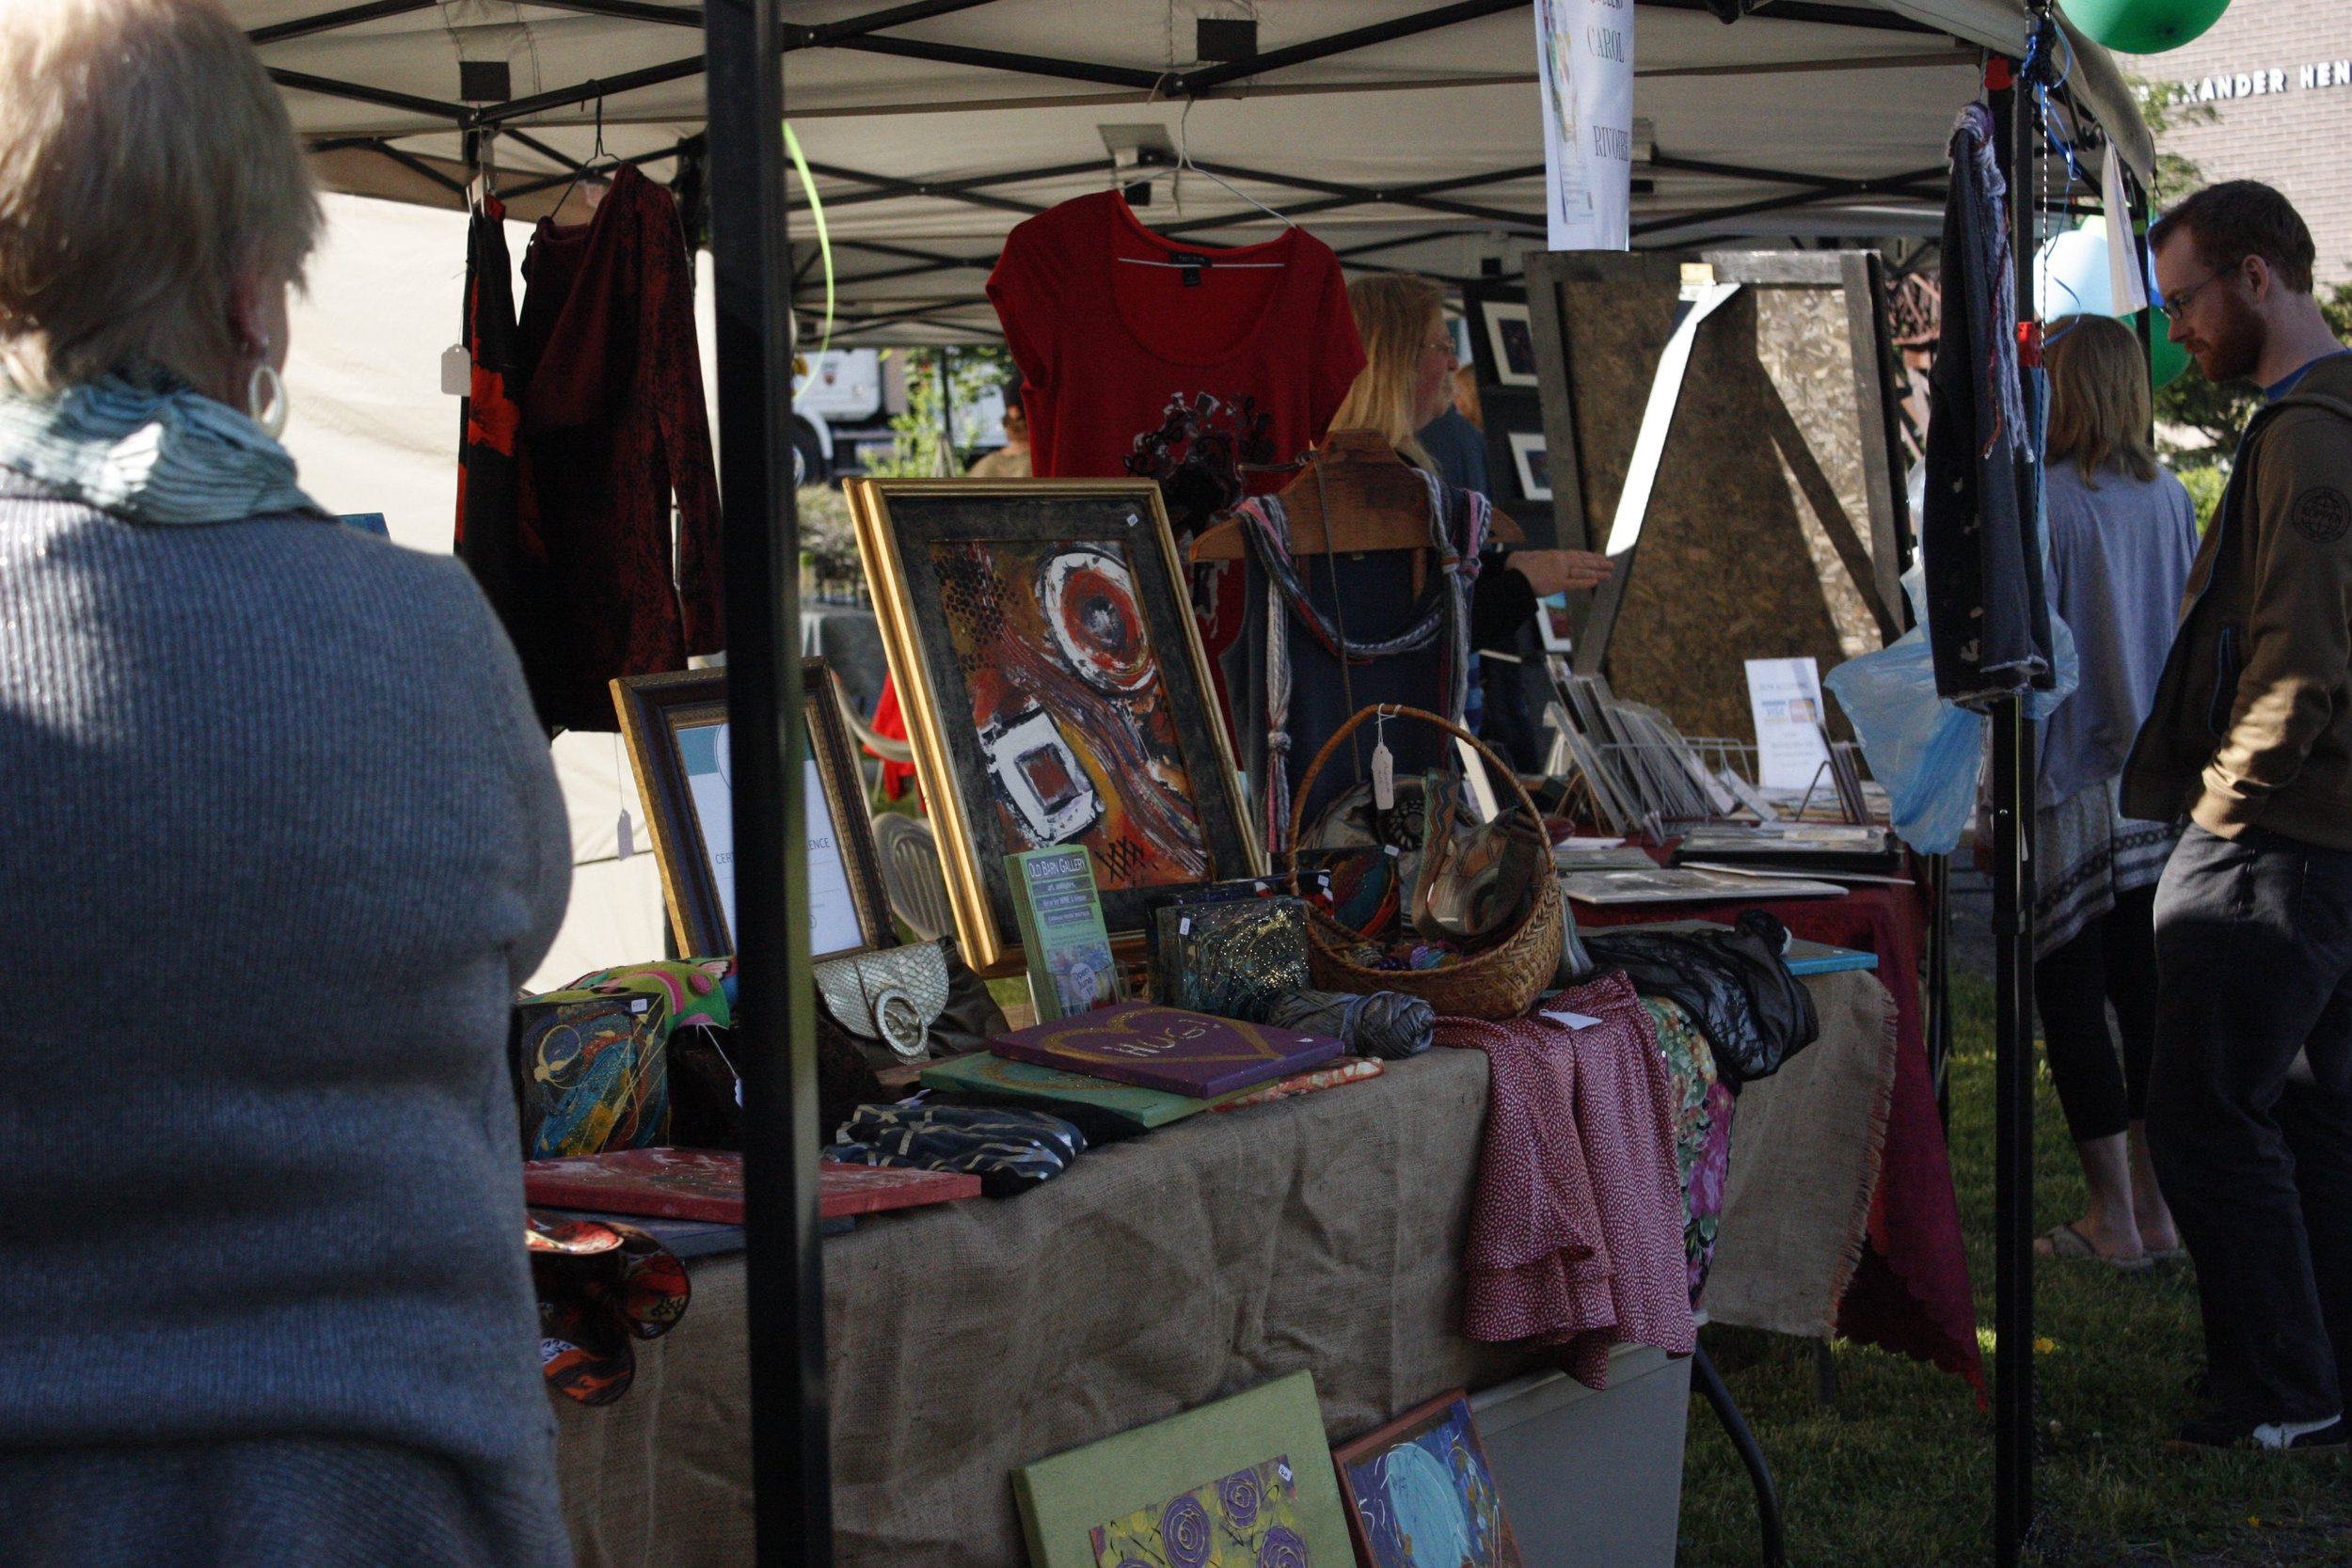 The Art Fair - The Antigonish Art Fair is a bi-weekly festival and market where artists, artisans, musicians, and more come to share their work and passion for the arts. The Art Fair season runs from mid-June to the end of August, with fairs every second Friday evening from 6-9pm.2019 Art Fairs: June 28, July 12, July 26, Aug 09, Aug 23